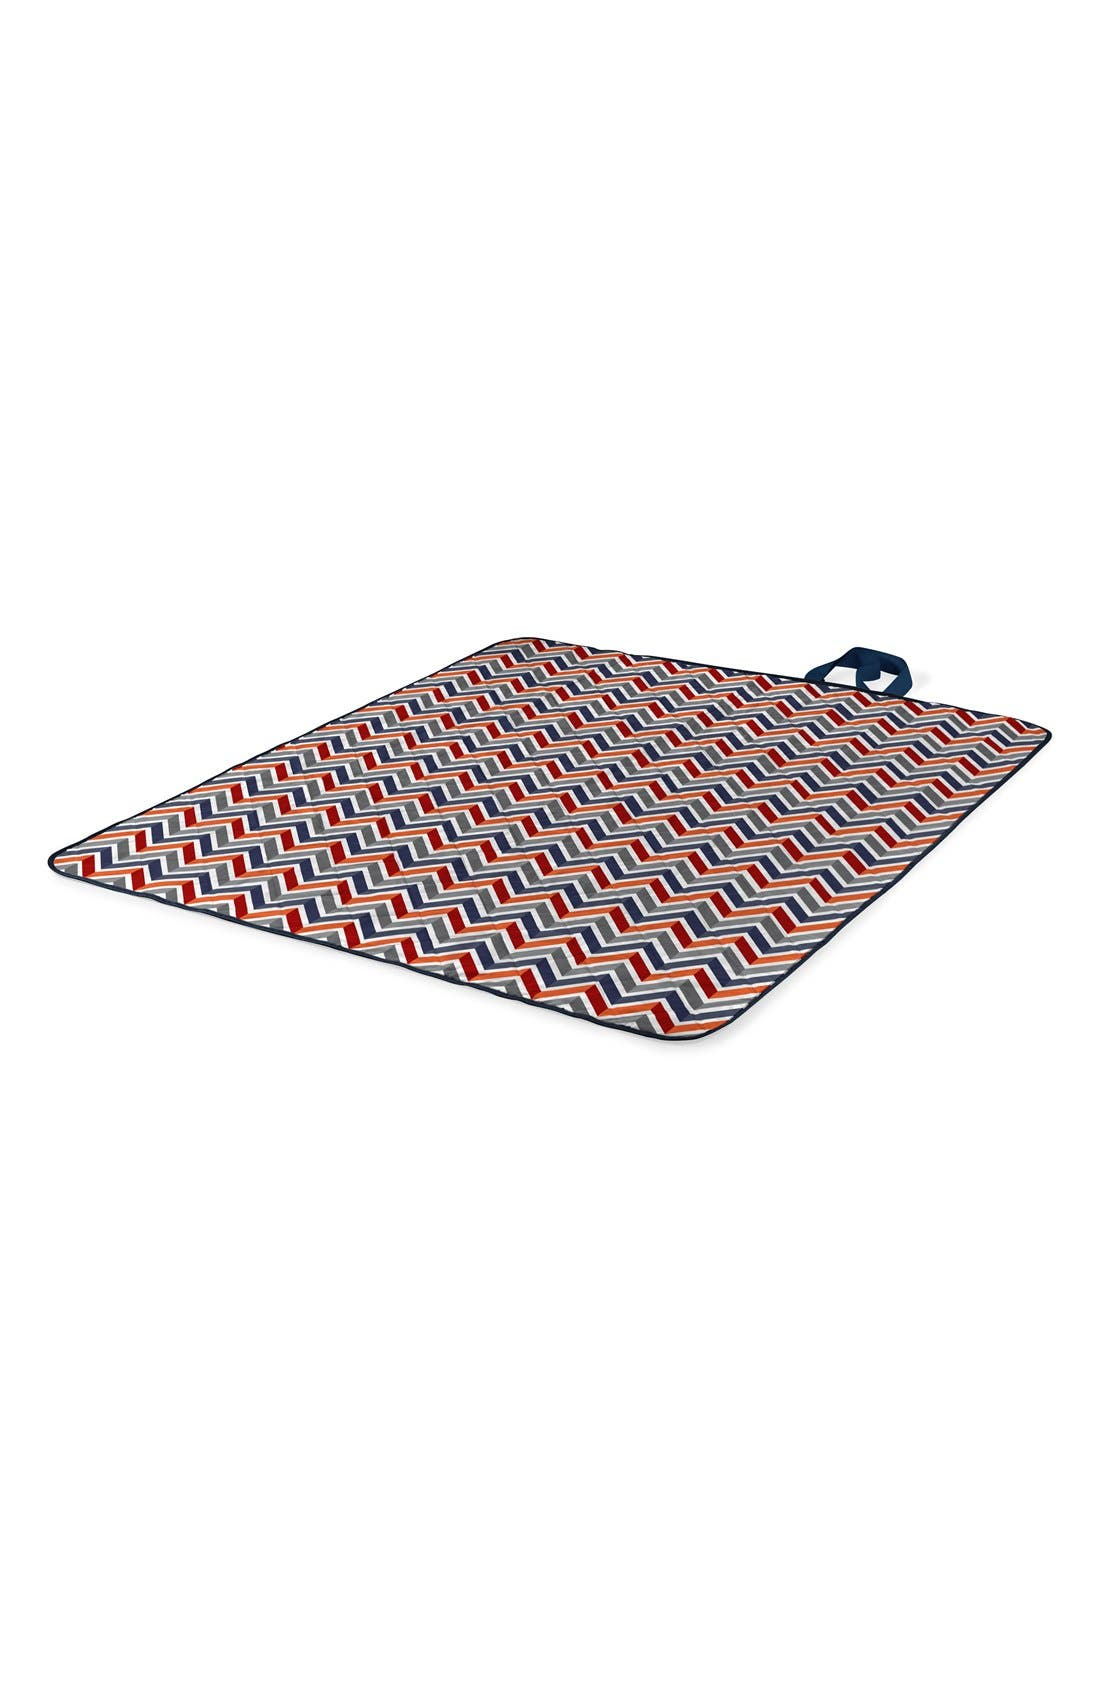 Alternate Image 3  - Picnic Time 'Vista' Packable Picnic Blanket